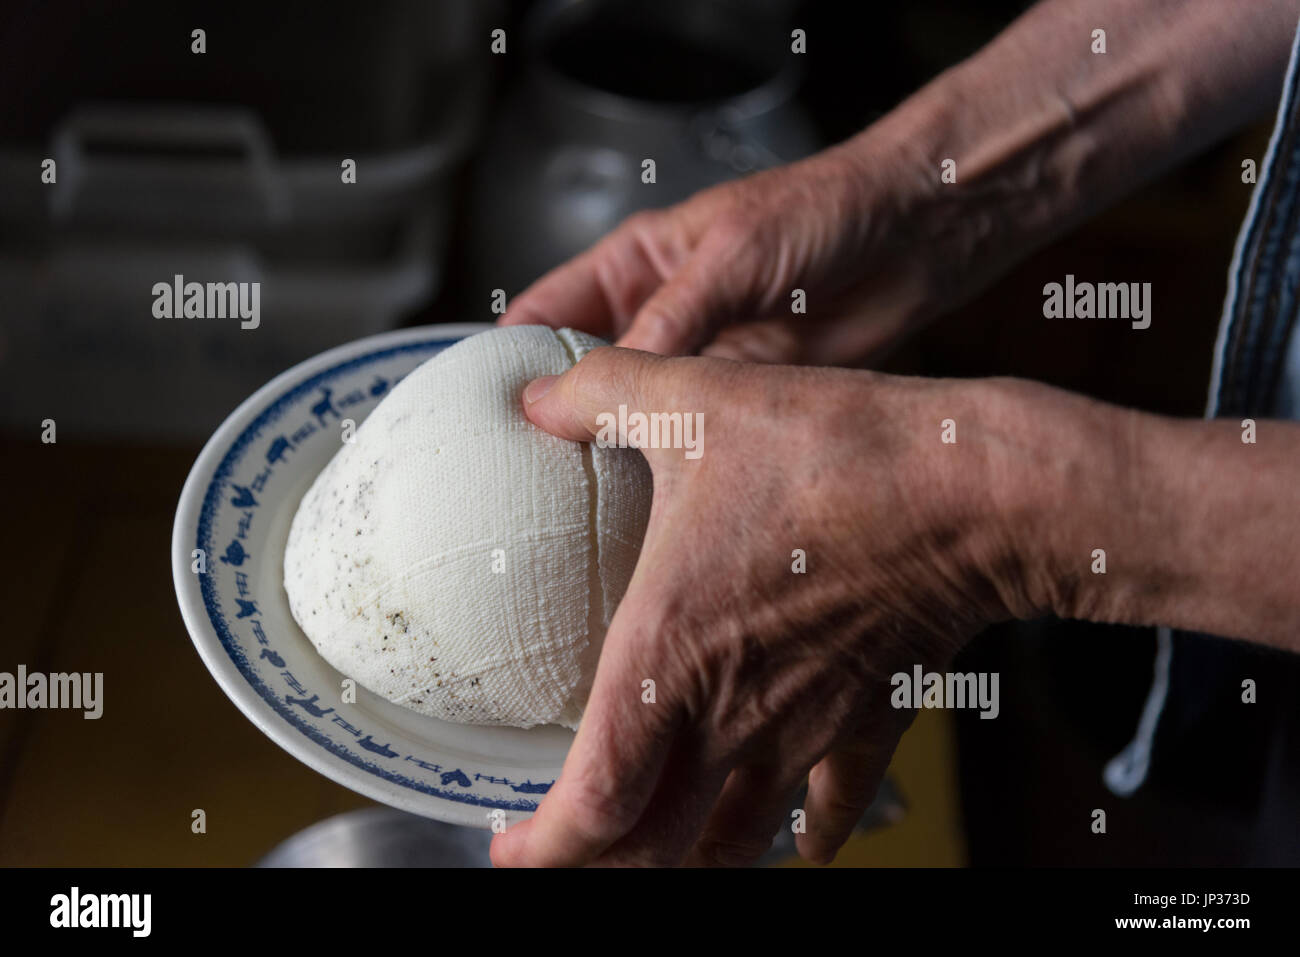 Making goat cheese at a mountain farm. This cheese is made from two days worth of goat milk from one goat. The cheese is still soft. - Stock Image